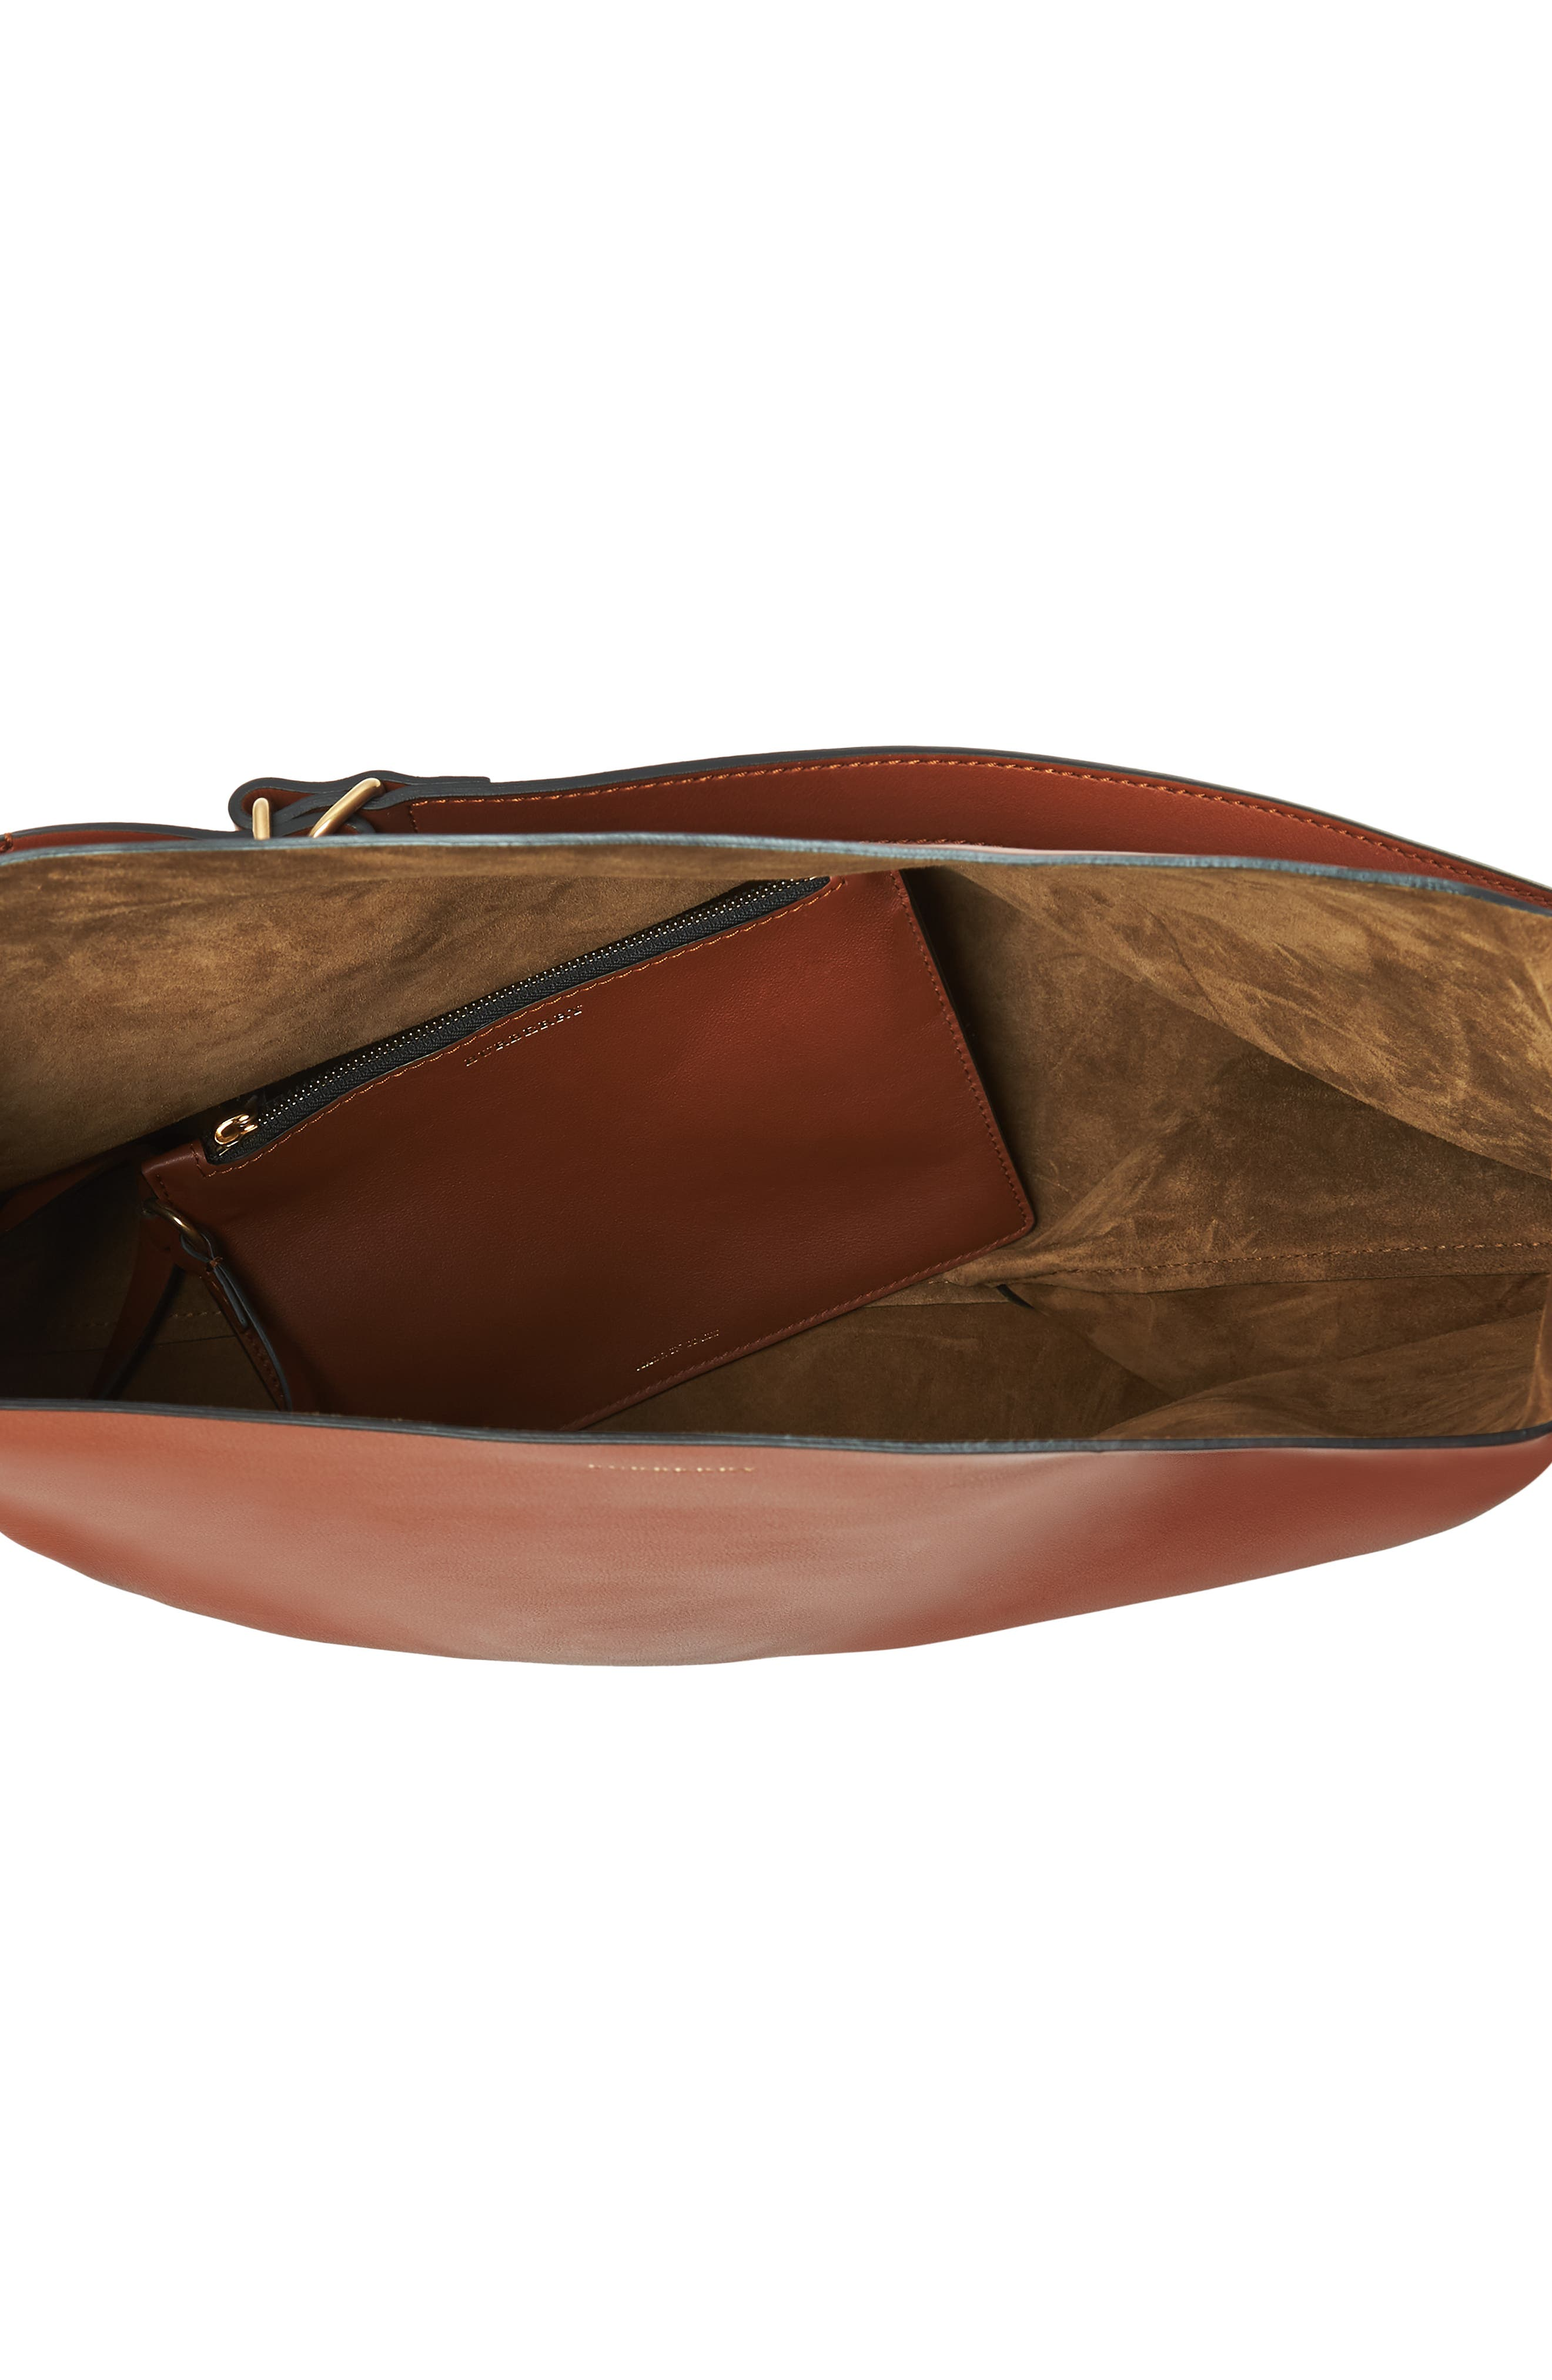 Grommet Medium Leather Hobo,                             Alternate thumbnail 3, color,                             216